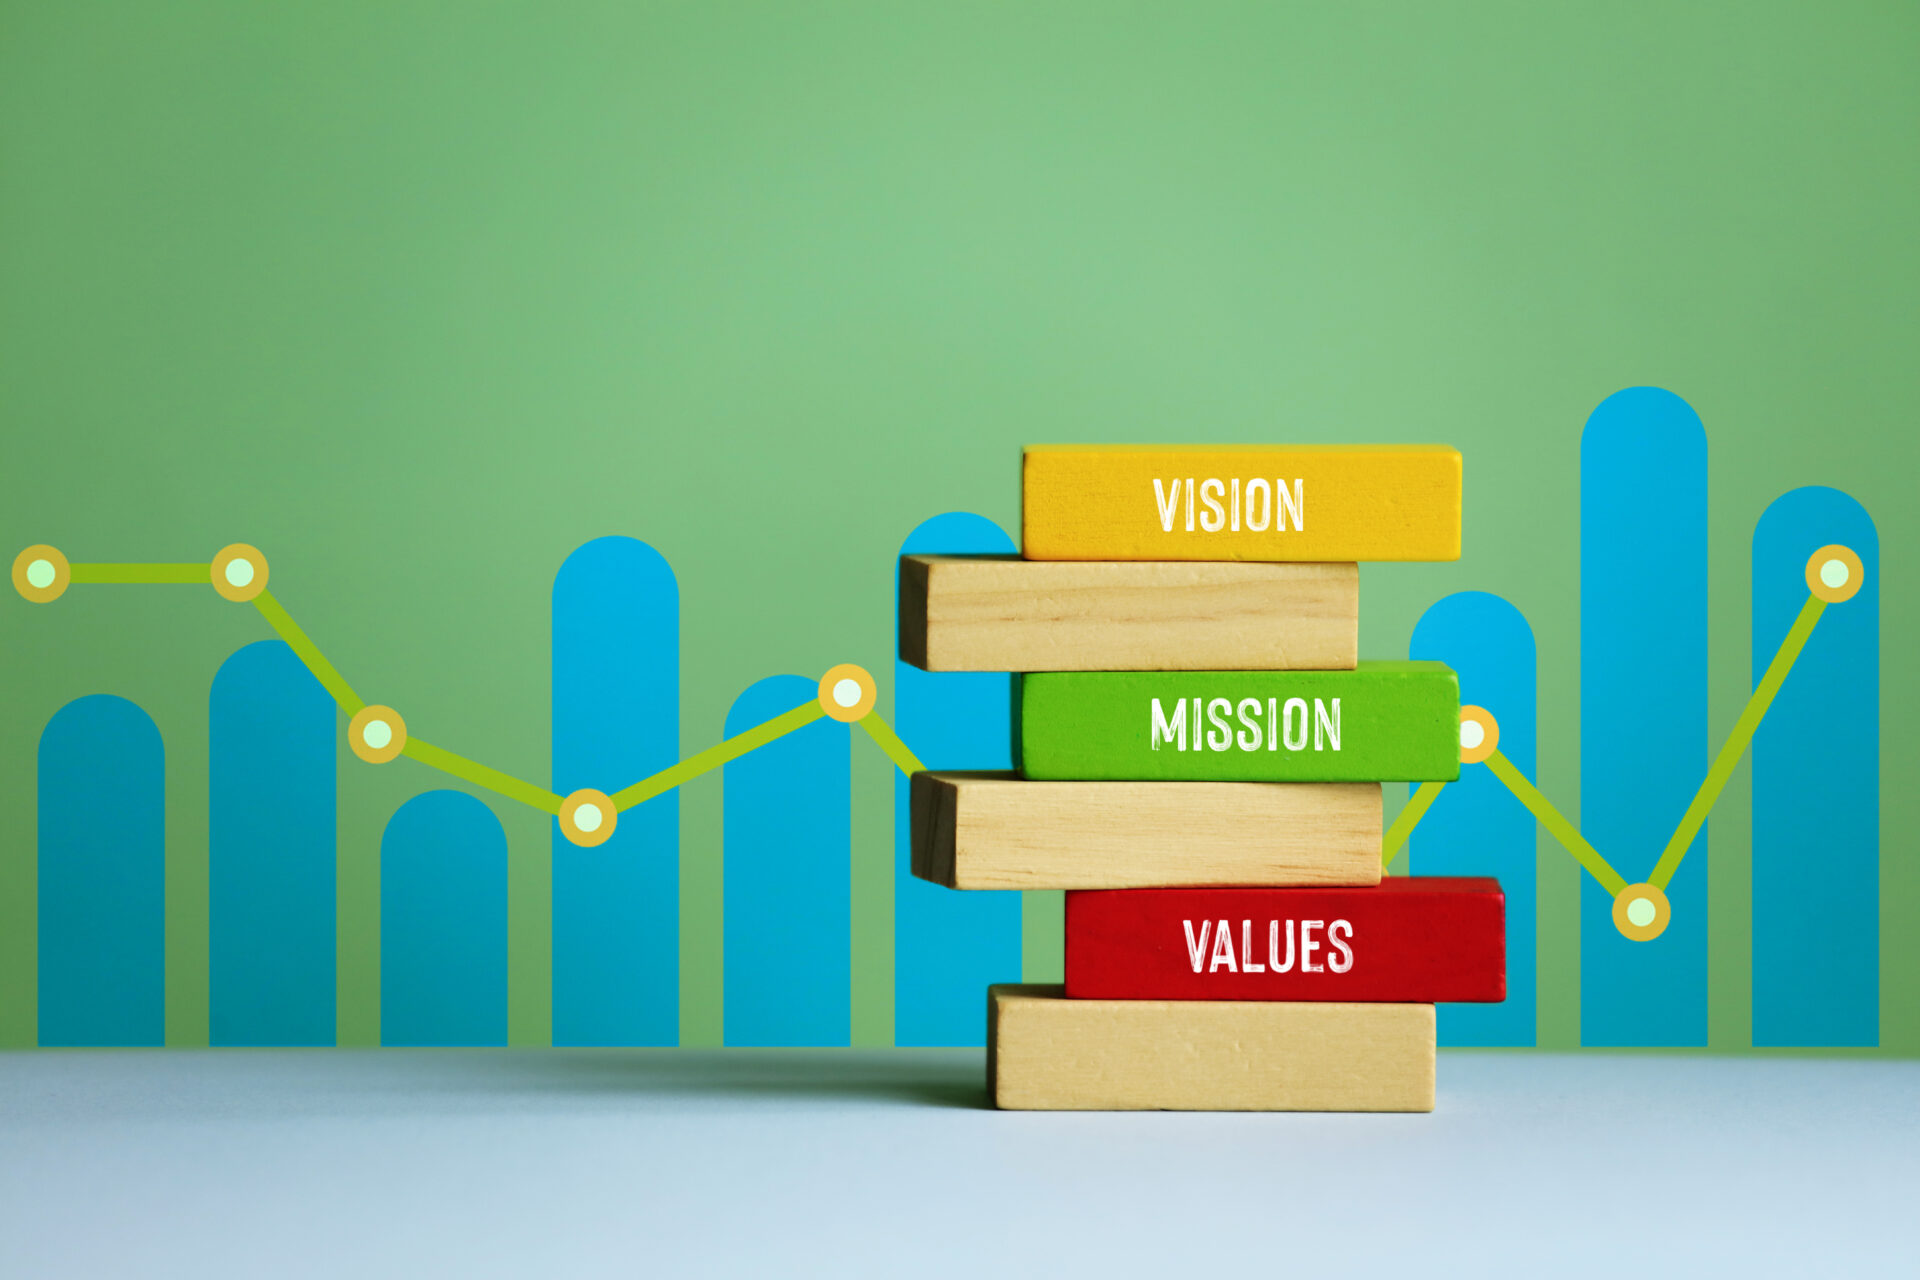 Branding 101 includes mission, vision, values